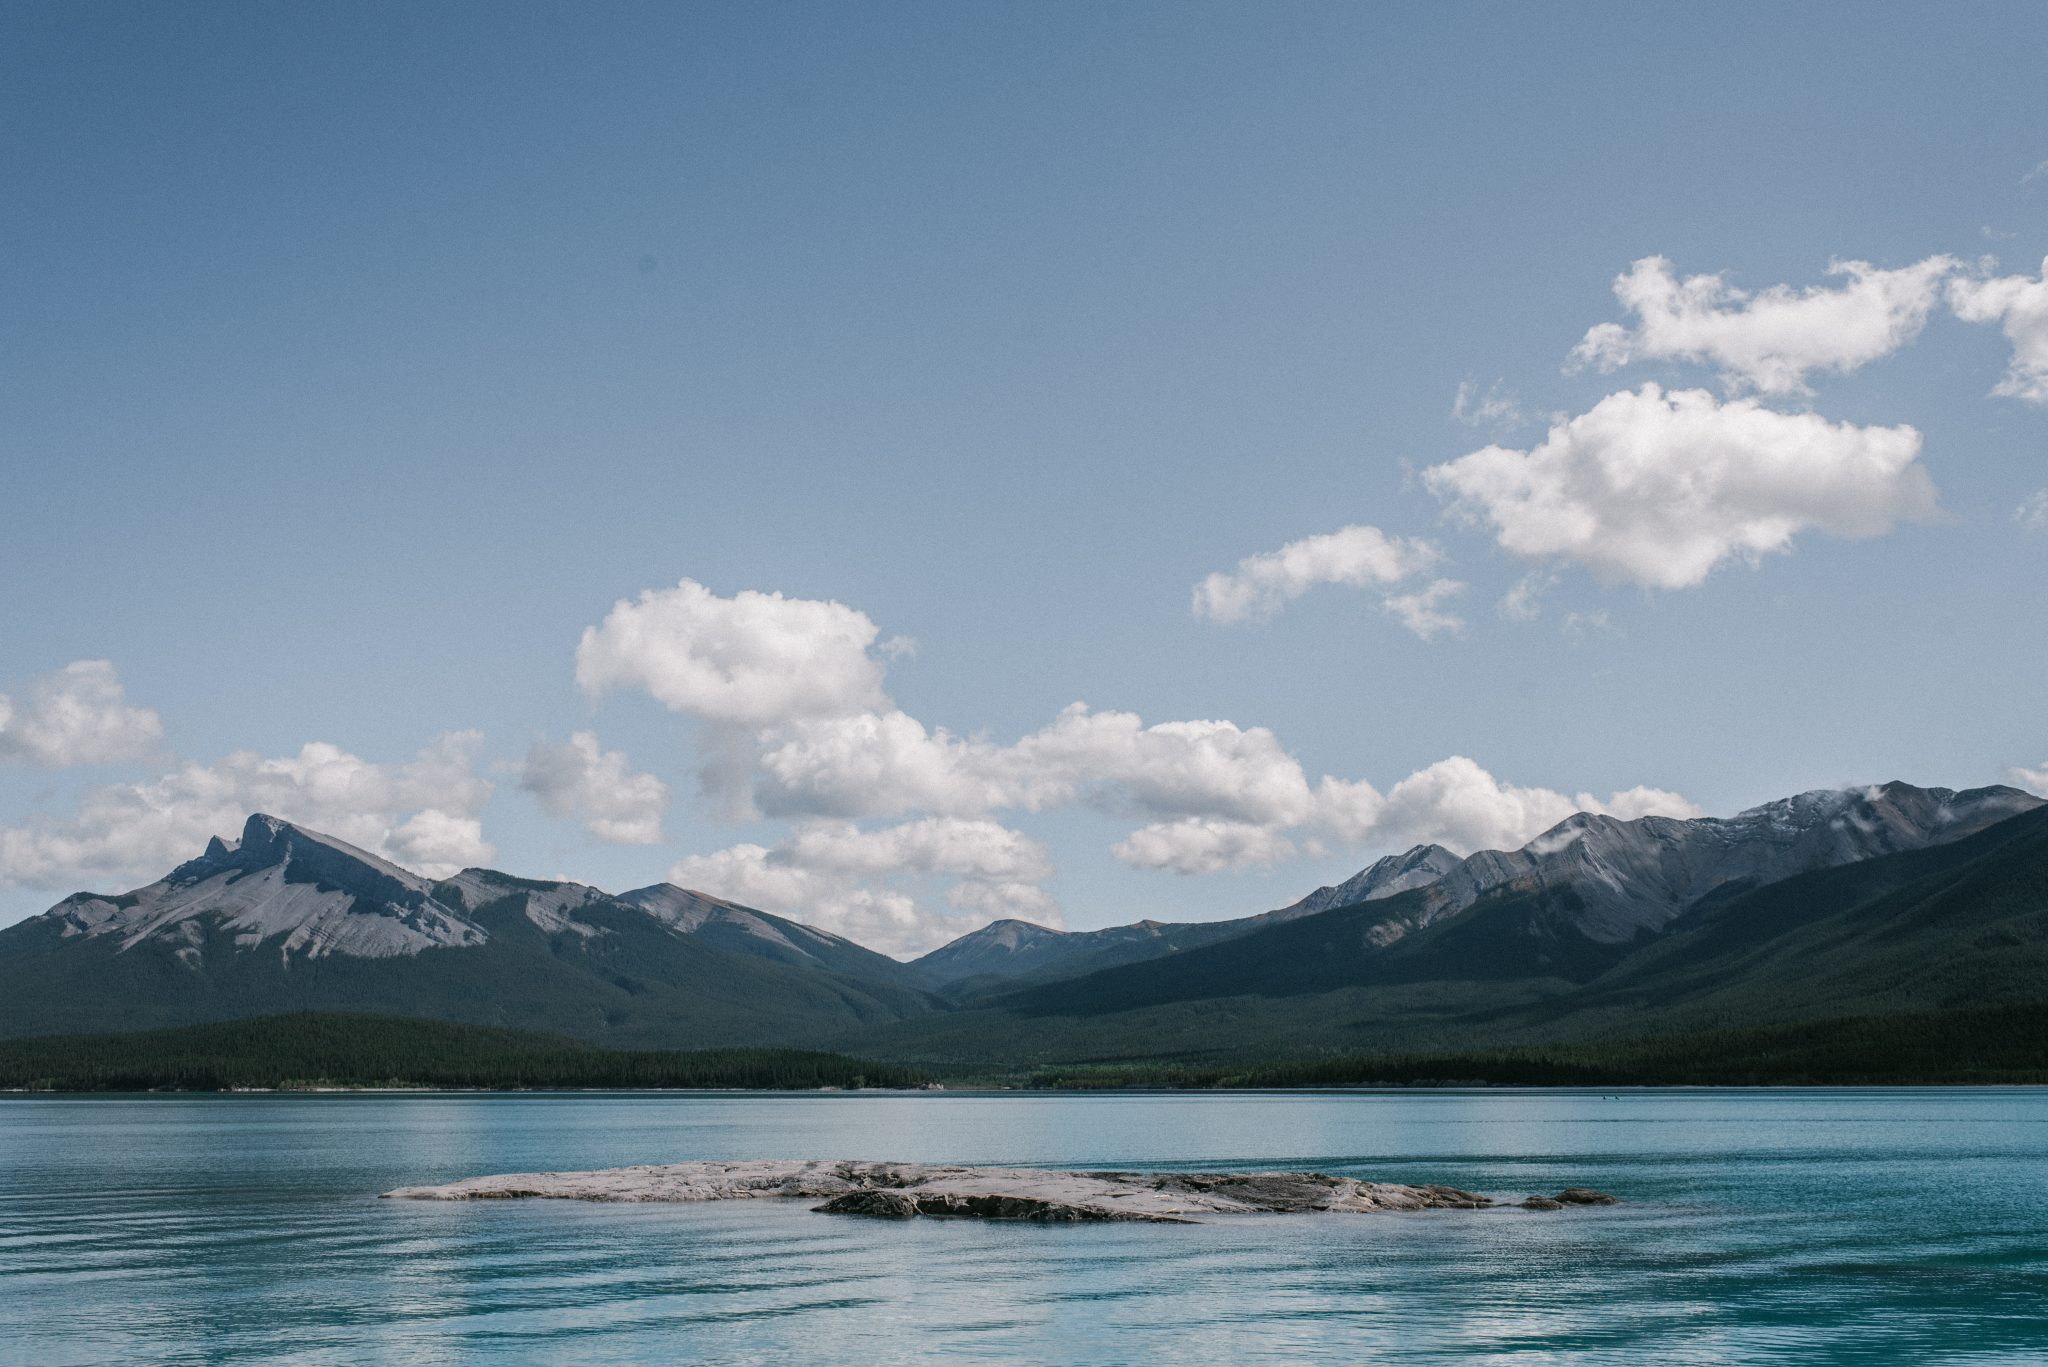 The view from Windy Point at Abraham Lake Alberta